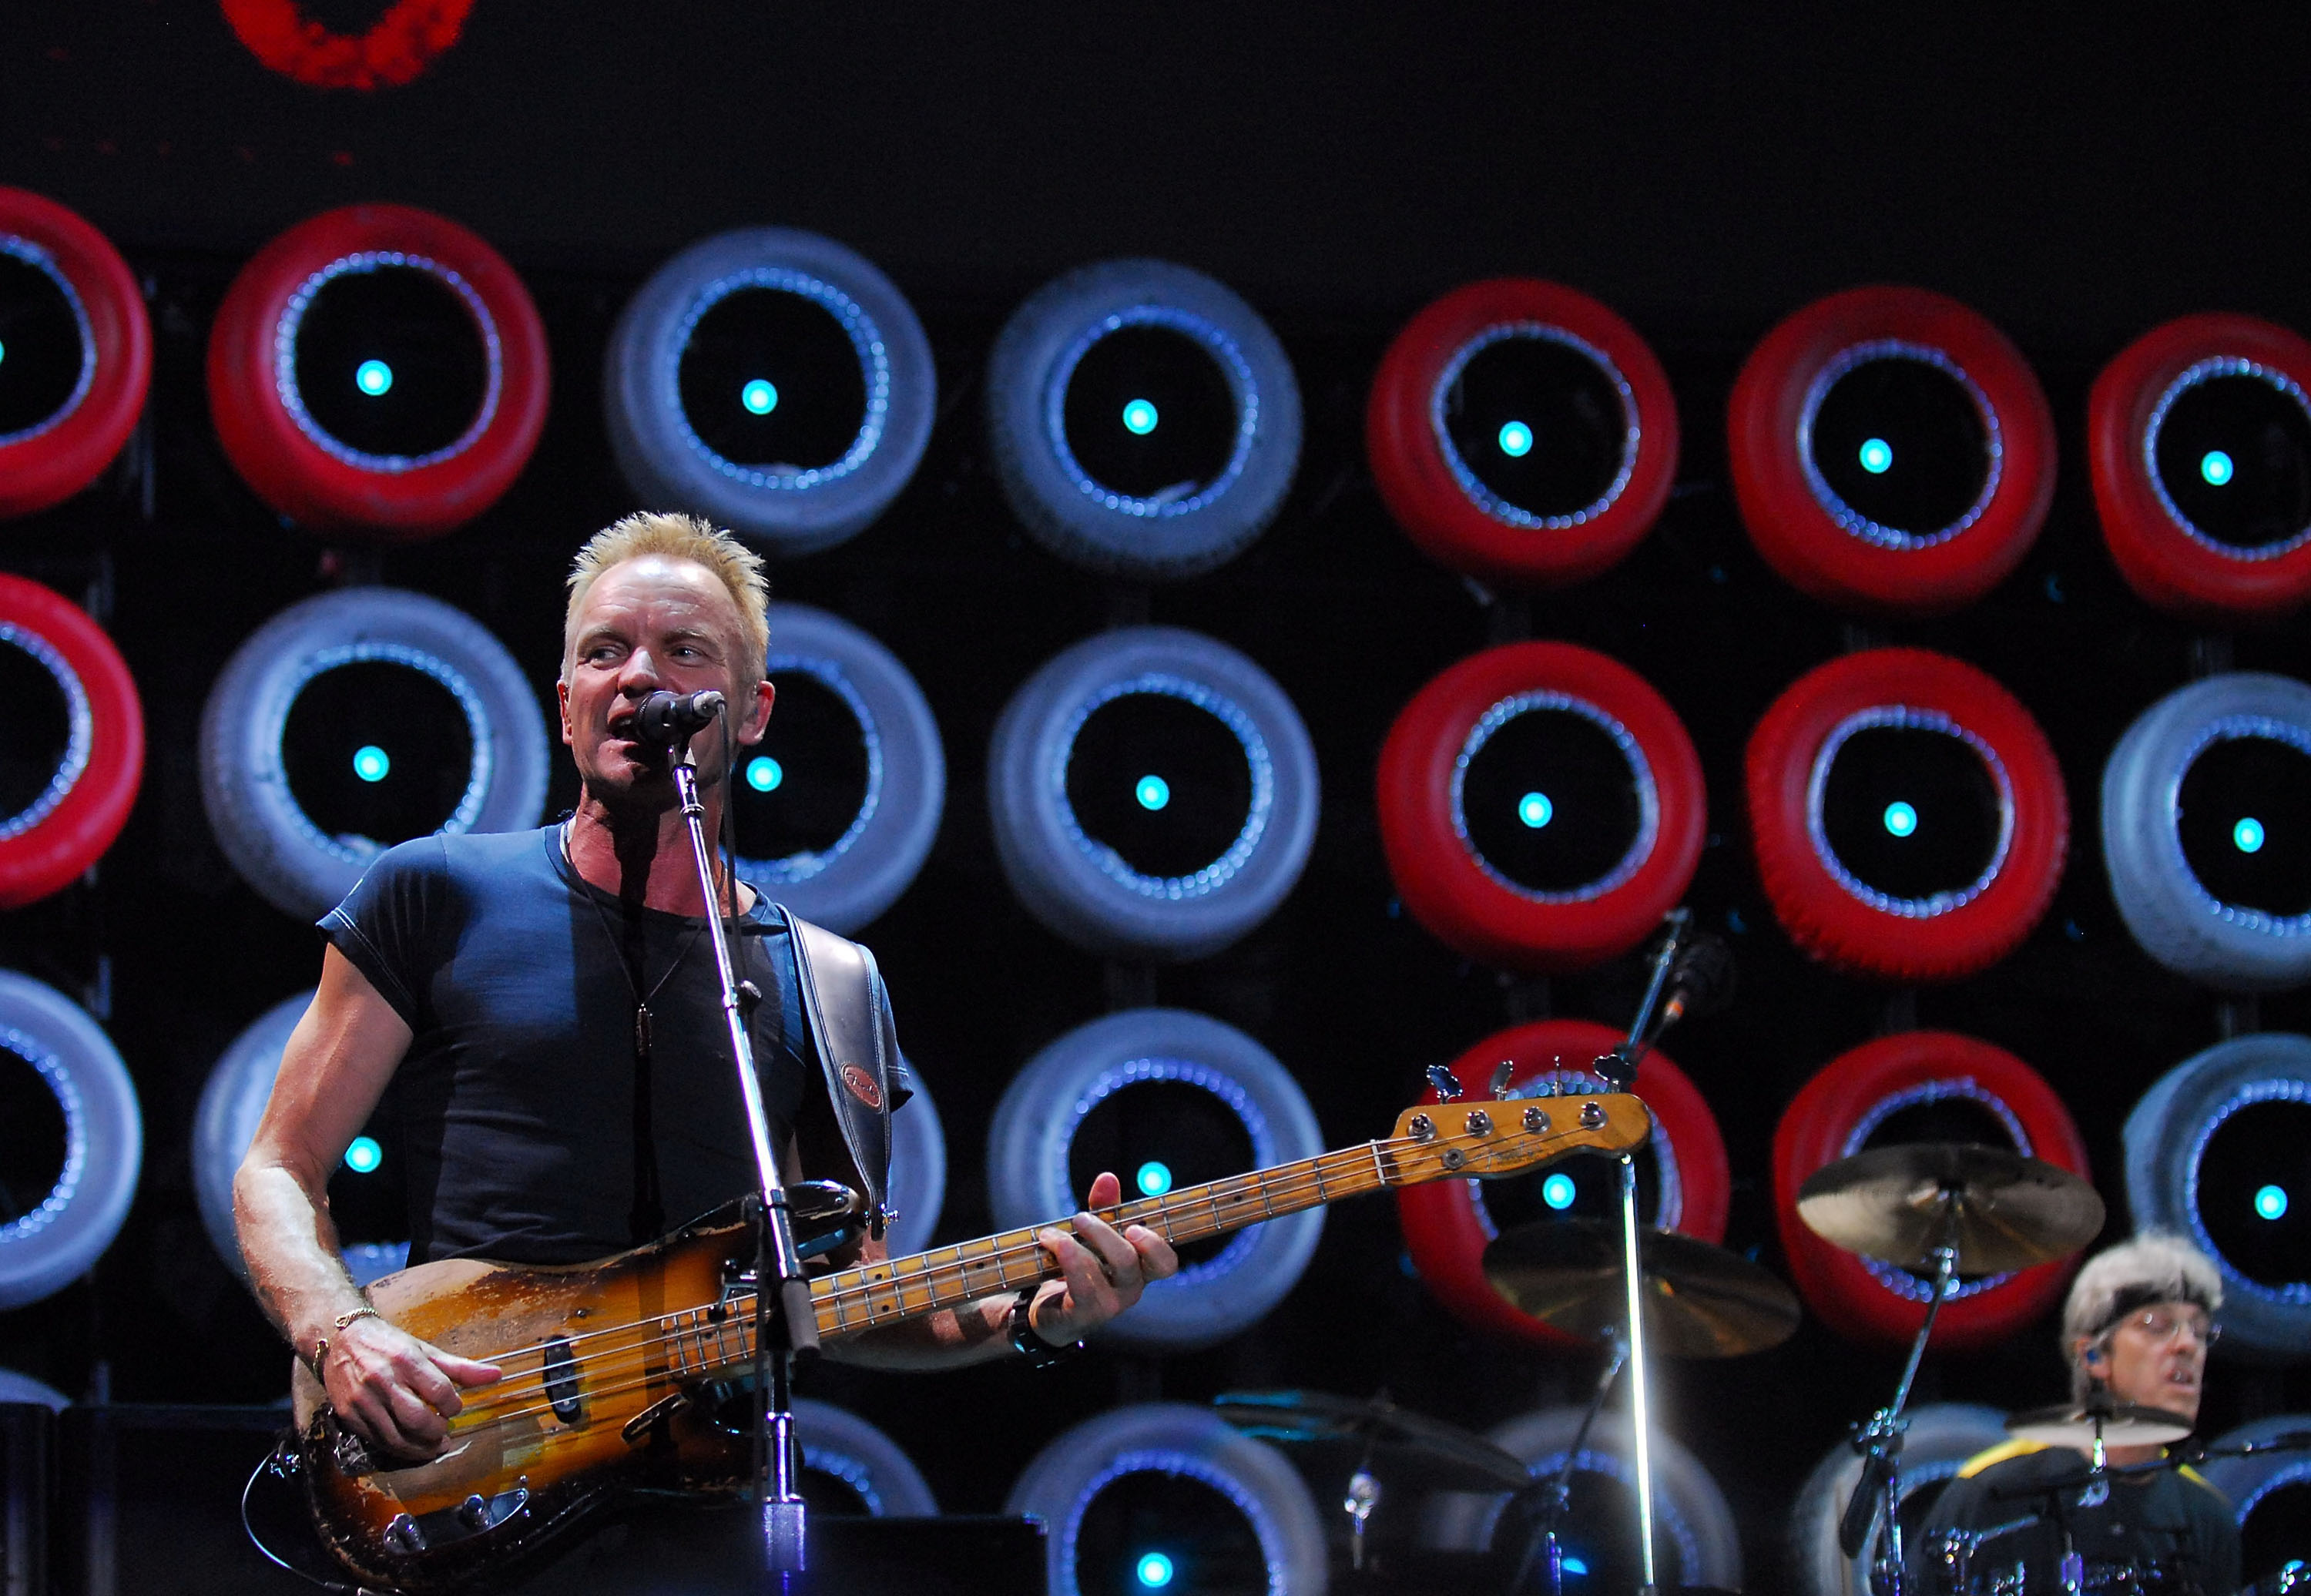 Singer/Bassist Sting and Drummer Stewart Copeland of The Police perform onstage at Live Earth New York held at Giants Stadium